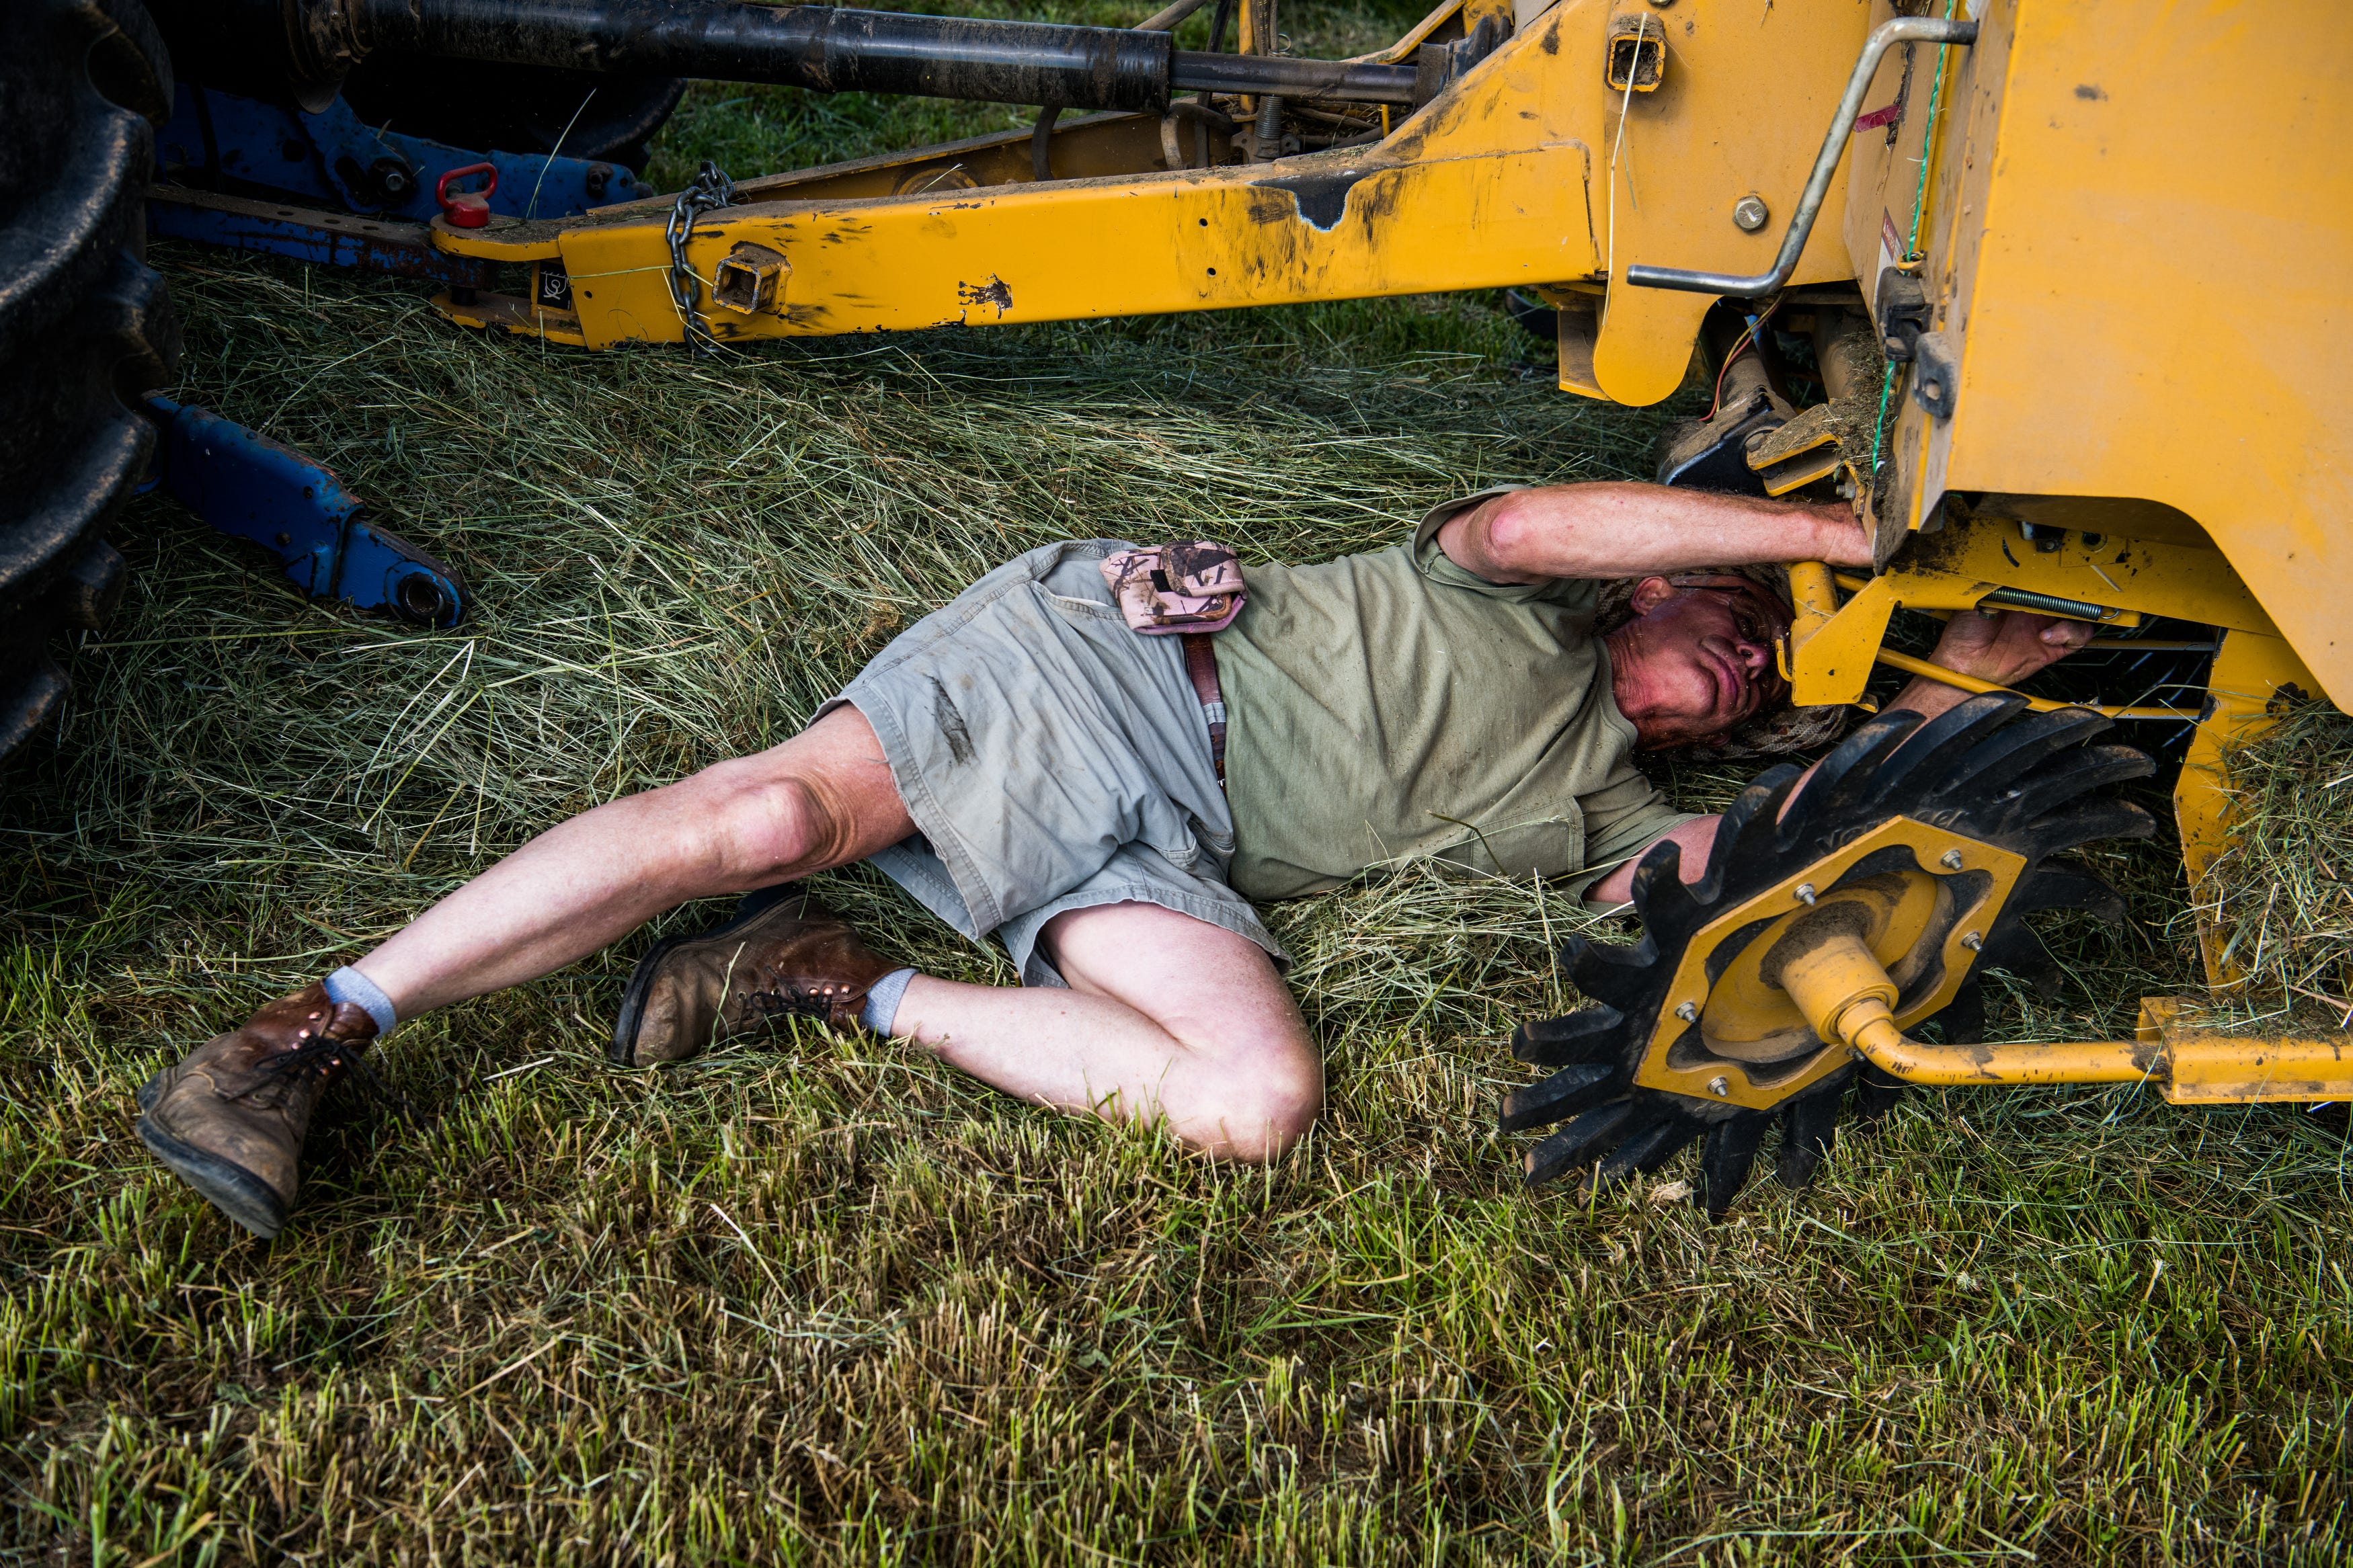 Wayne Clifford, 71, bales hay at his farm on Ruddles Mill Road in Harrison County, Ky. on Saturday, June 5, 2021.